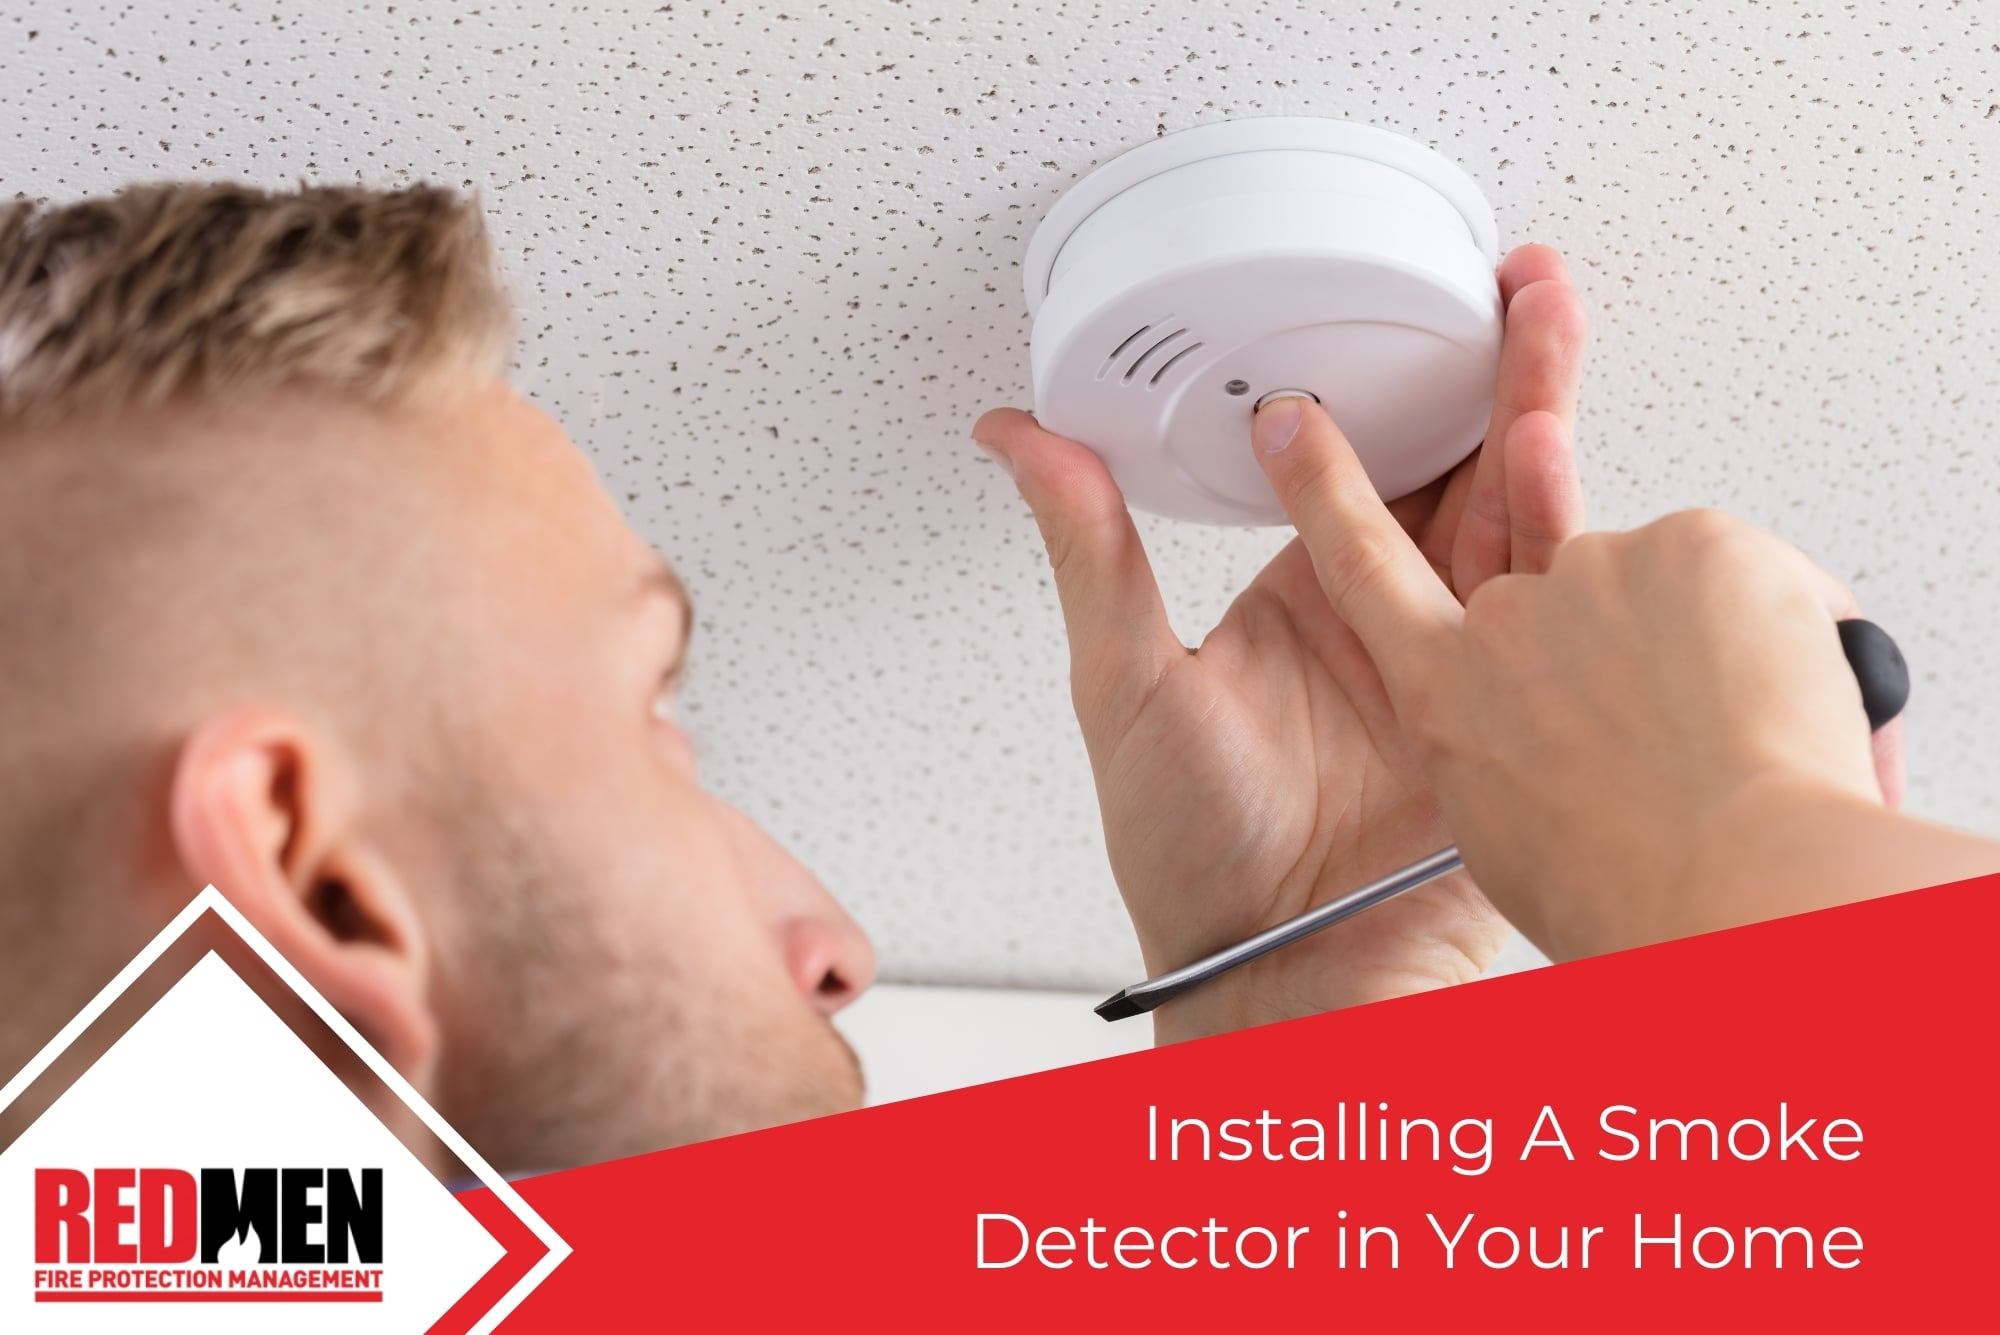 Installing A Smoke Detector in Your Home